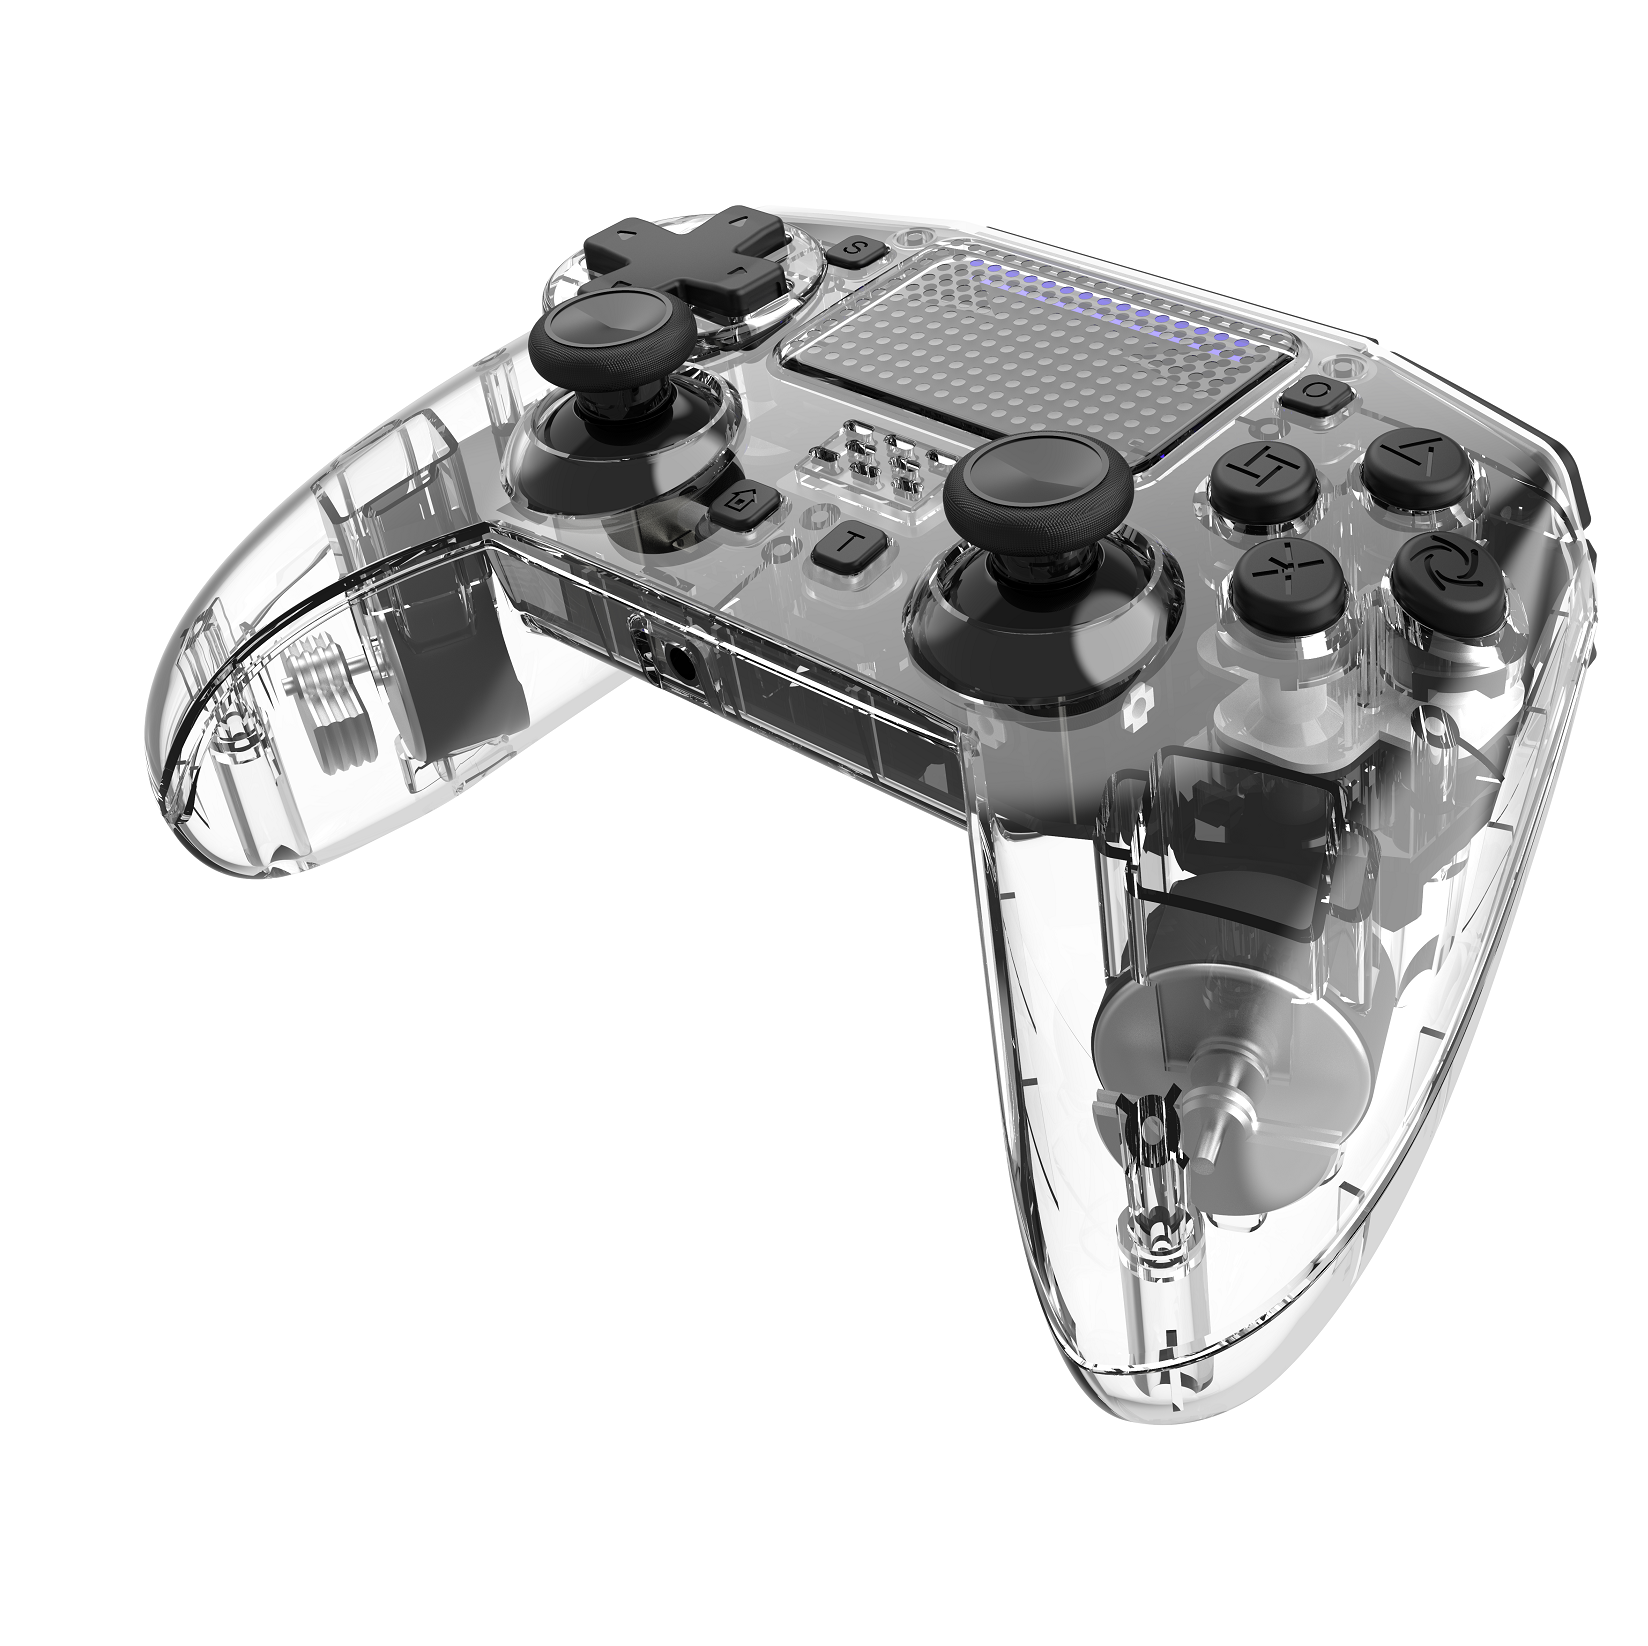 Nieuwe Patroon Draadloze Controller <span class=keywords><strong>6</strong></span> Axis Game Console Professionele Gaming Touch Draagbare Mobiele Voor P4